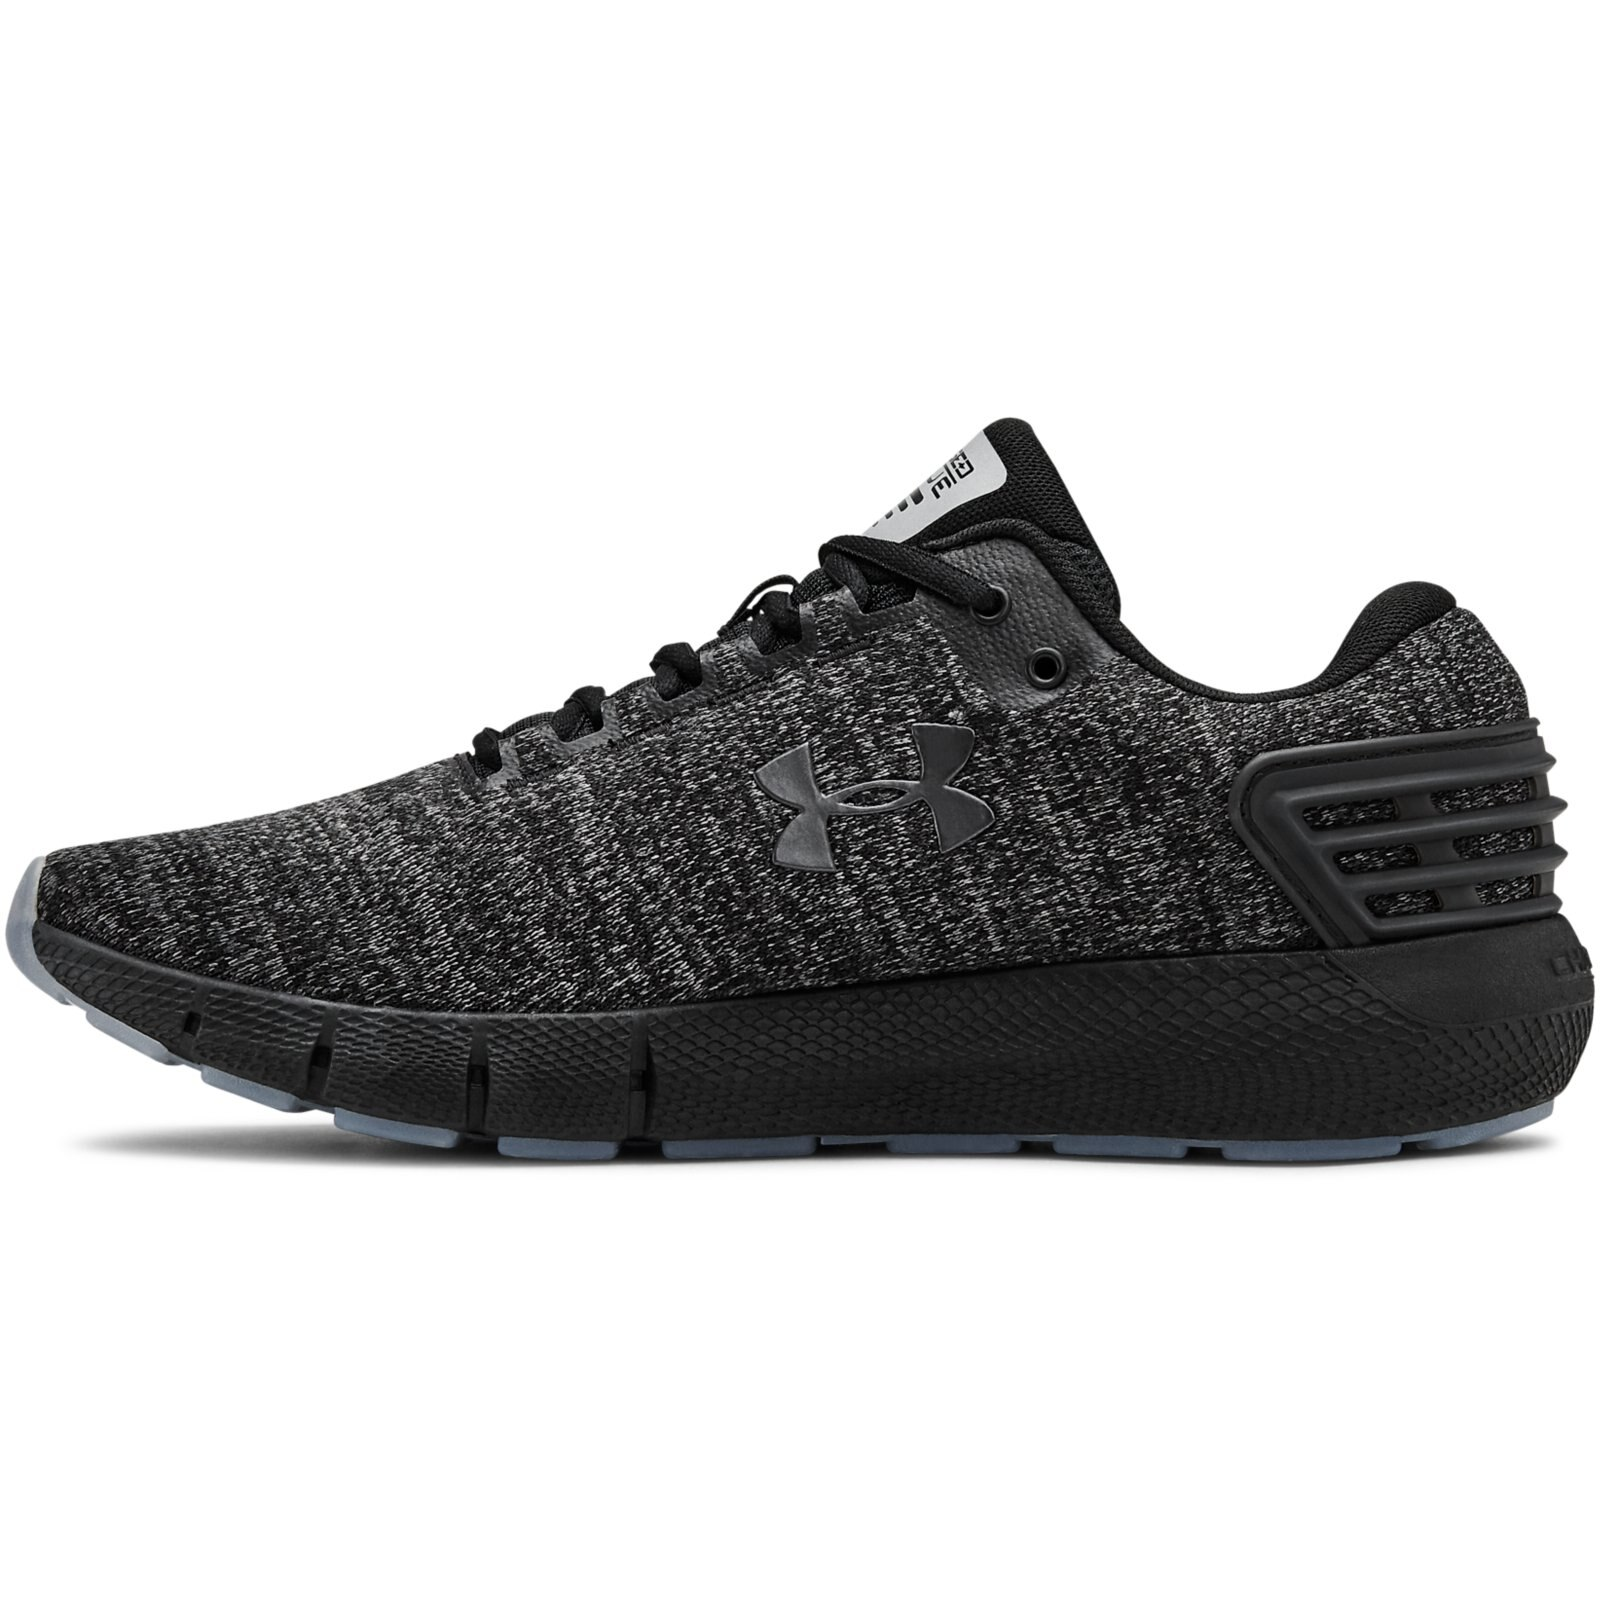 Мужские кроссовки Under Armour Charged Rogue Twist Ice 3022674-001